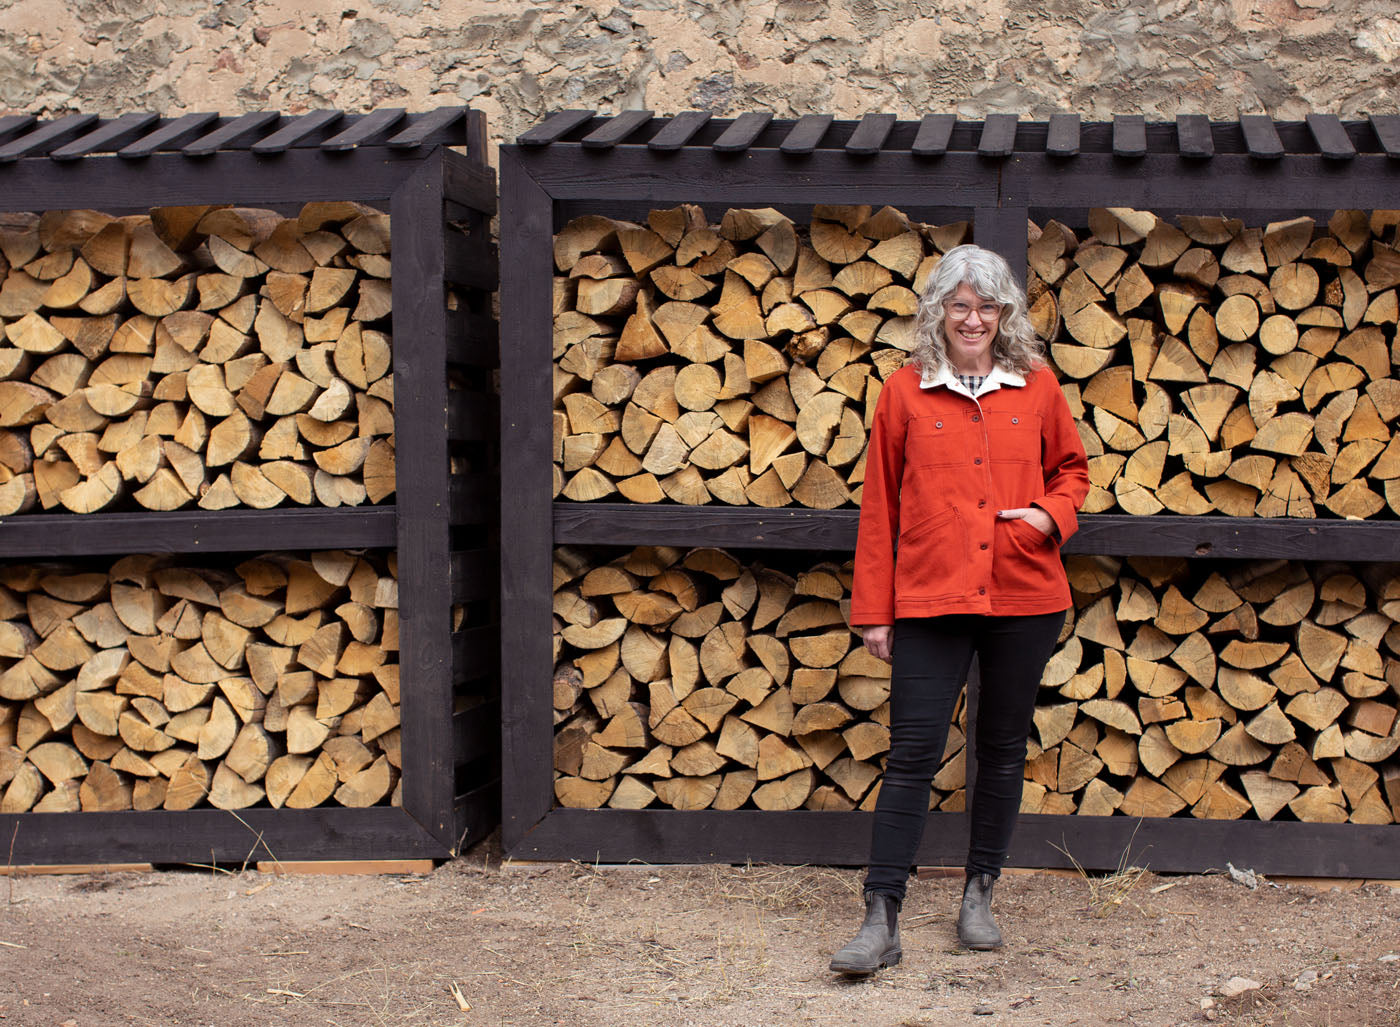 Jaime stands in front of a neatly stacked wall of firewood, wearing her Thayer Jacket in fire-orange twill, black skinny jeans and boots. That is a lot of firewood behind her!